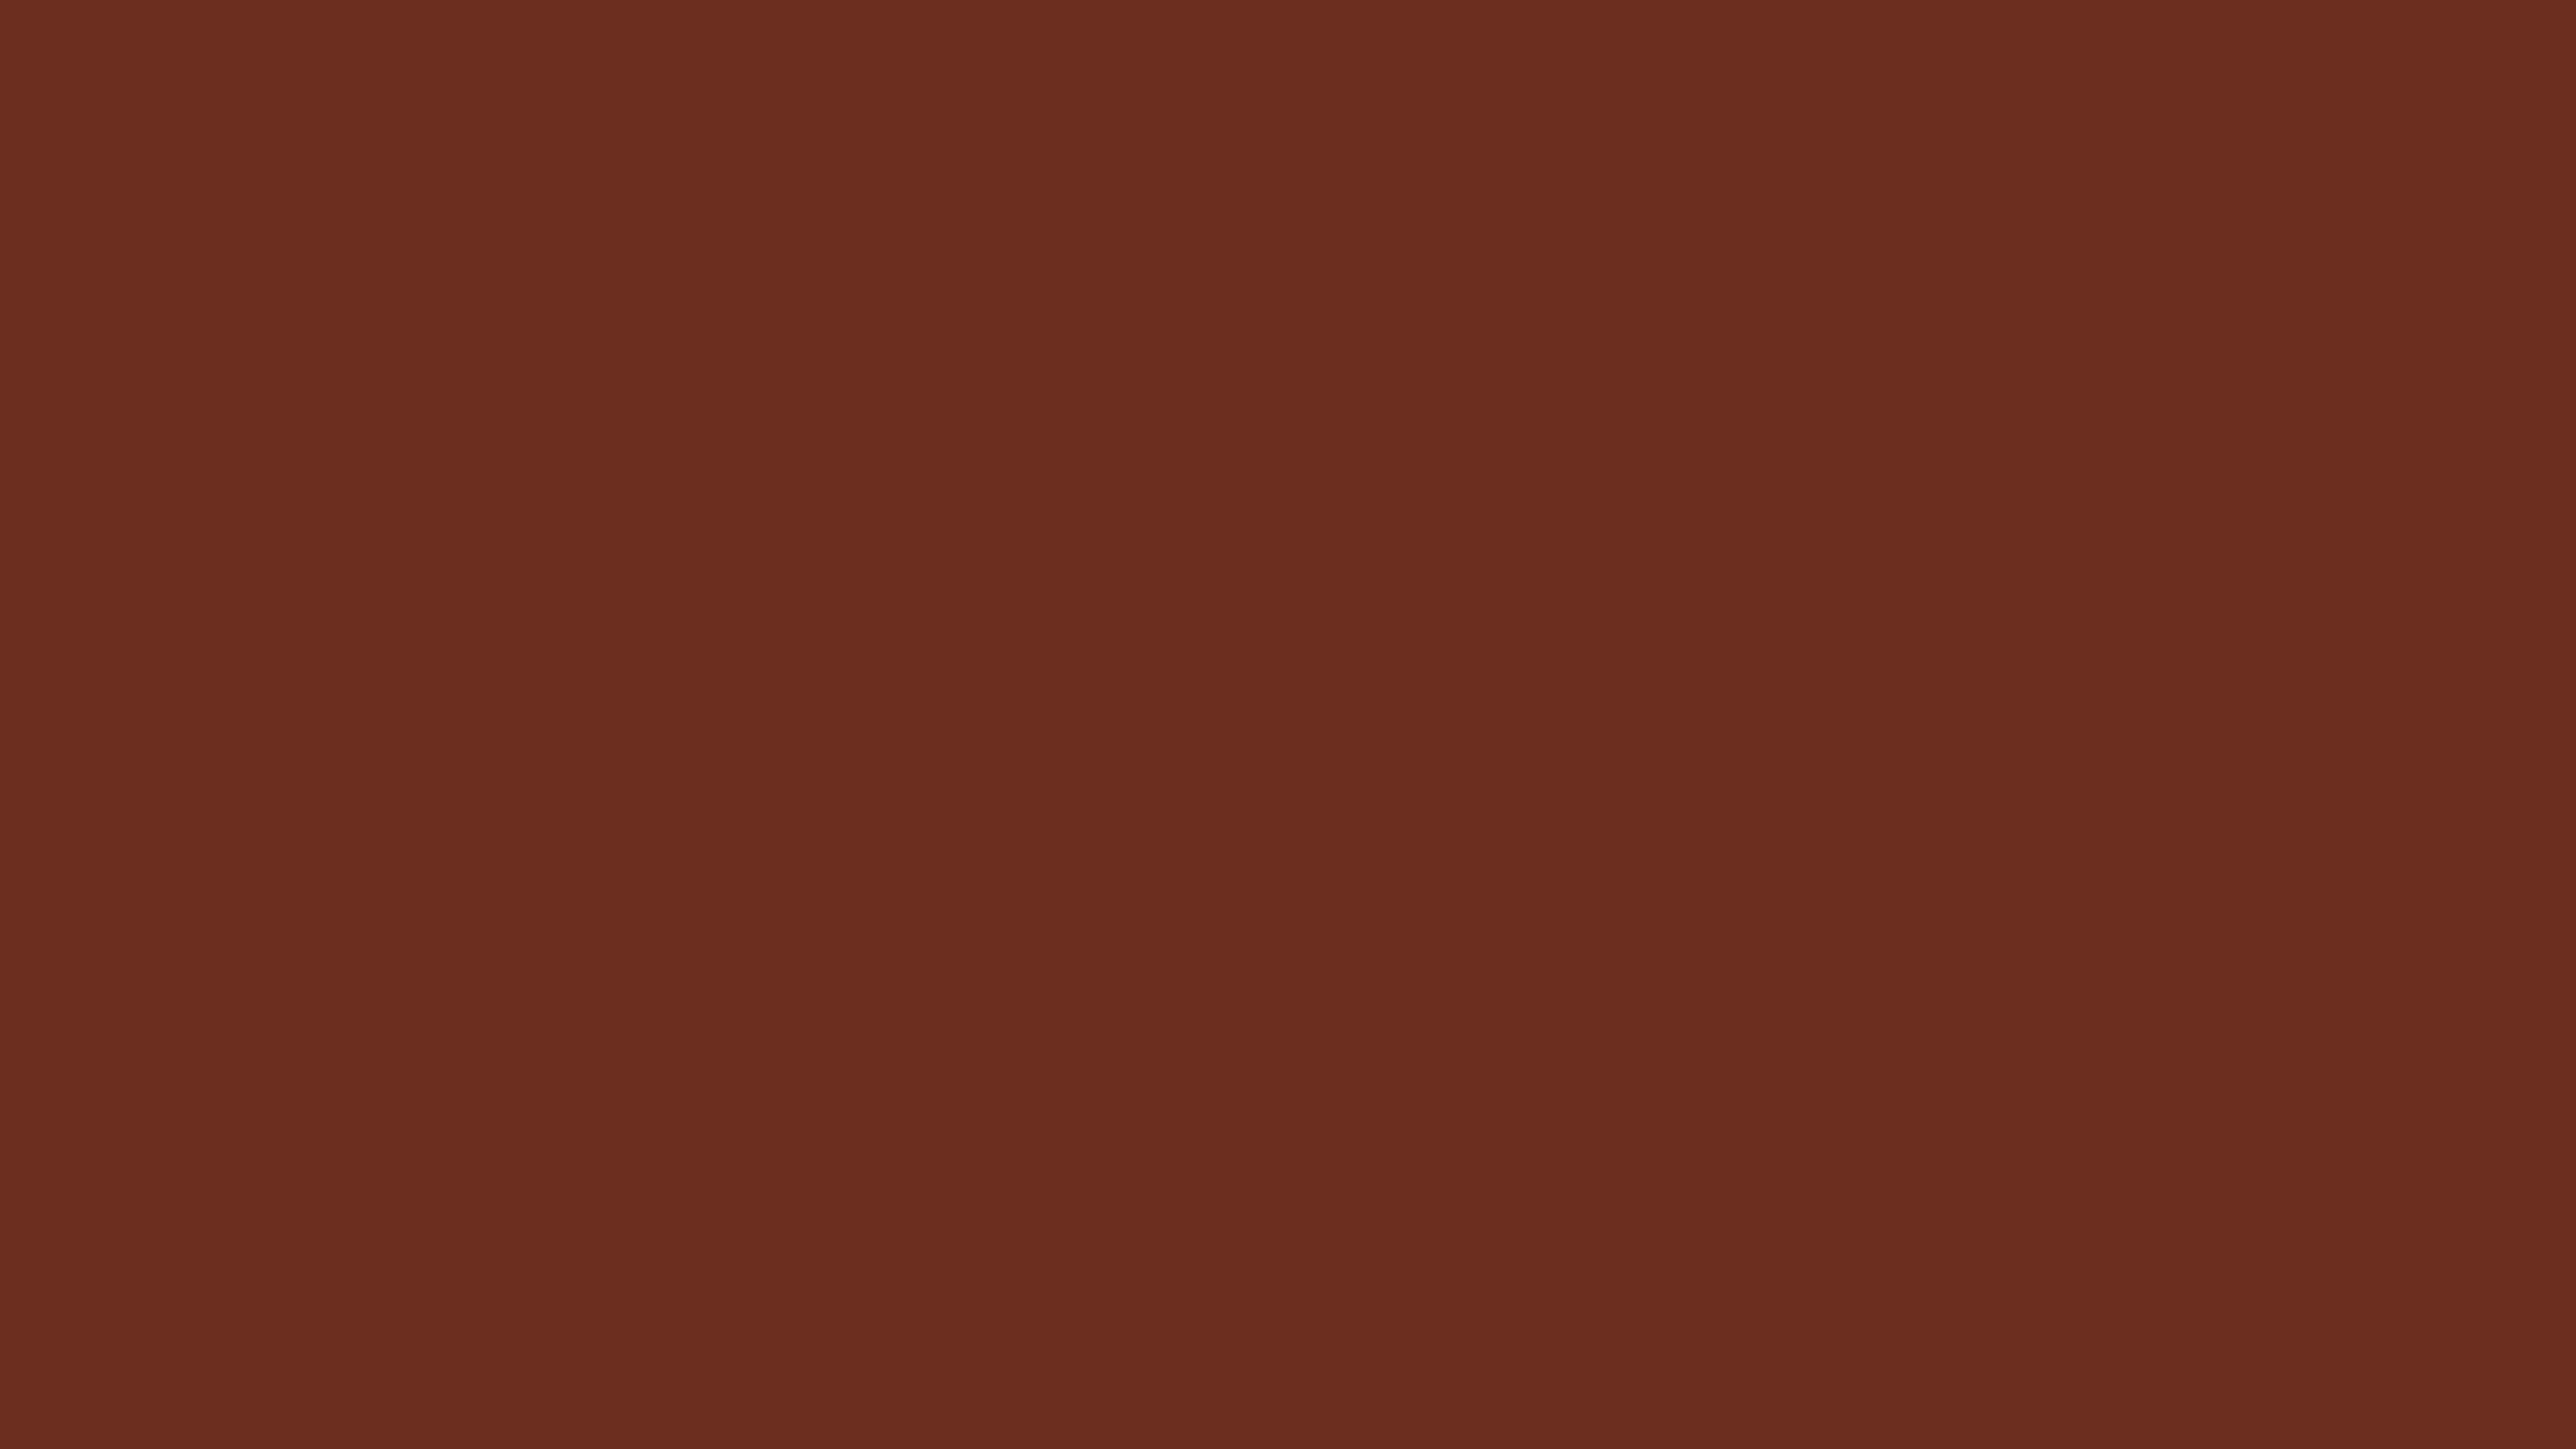 3840x2160 Liver Organ Solid Color Background 3840x2160